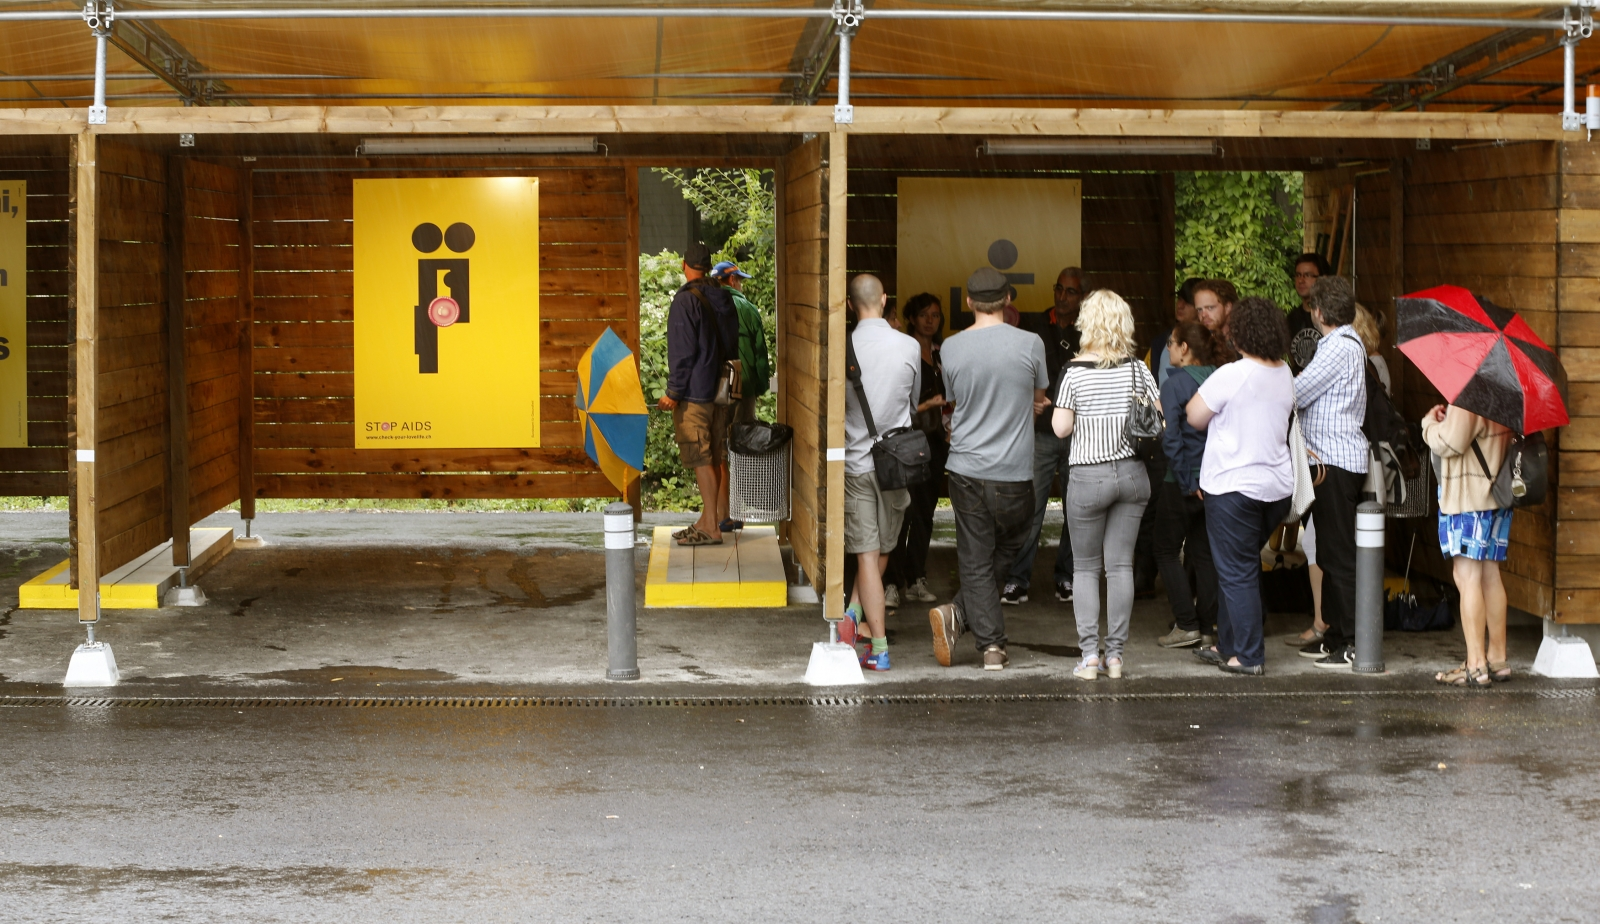 Tourists - not punters, check out a 'sex box' in Zurich, Switzerland, where prostitutes can entertain clients